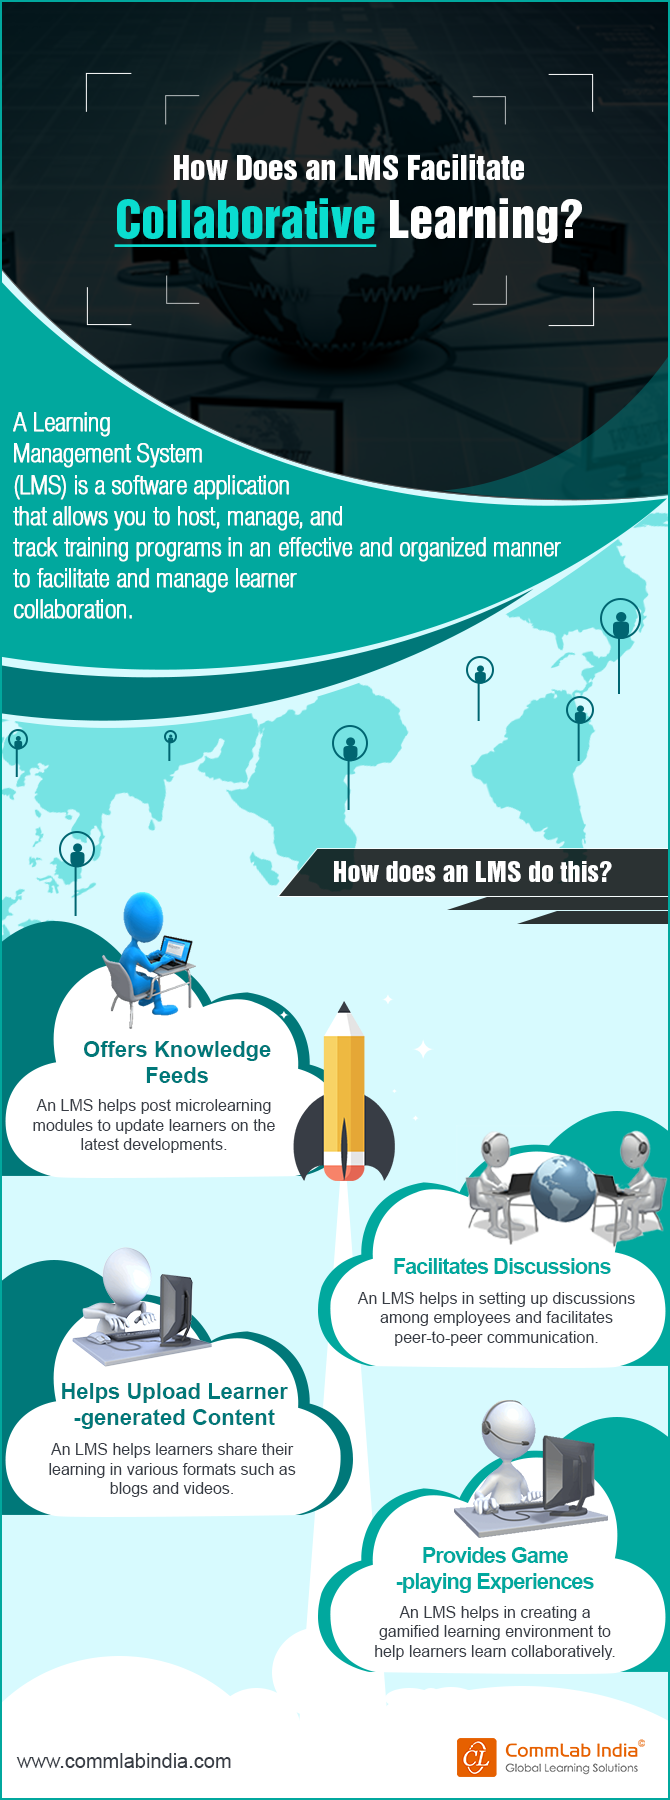 How does an LMS facilitate collaborative learning?